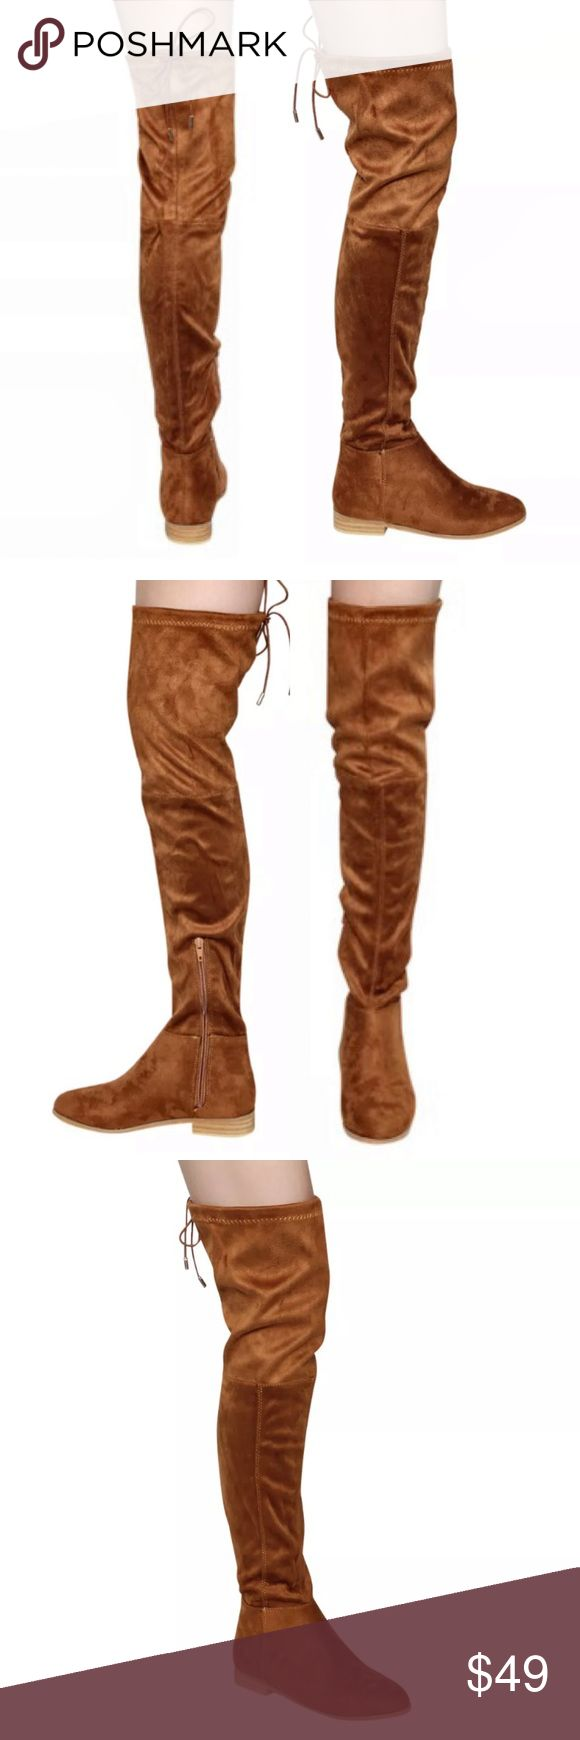 🆕List! Chestnut Suede Flat Knee Boots! NEW! Gorgeous chestnut vegan suede! Inside partial zip and drawstring tie top. Heel height 1.25 inches. Shaft height 24.25 inches. Shaft circumference 16.25 inches. Size 7. New in box. LC:shsf6 Boutique Shoes Over the Knee Boots